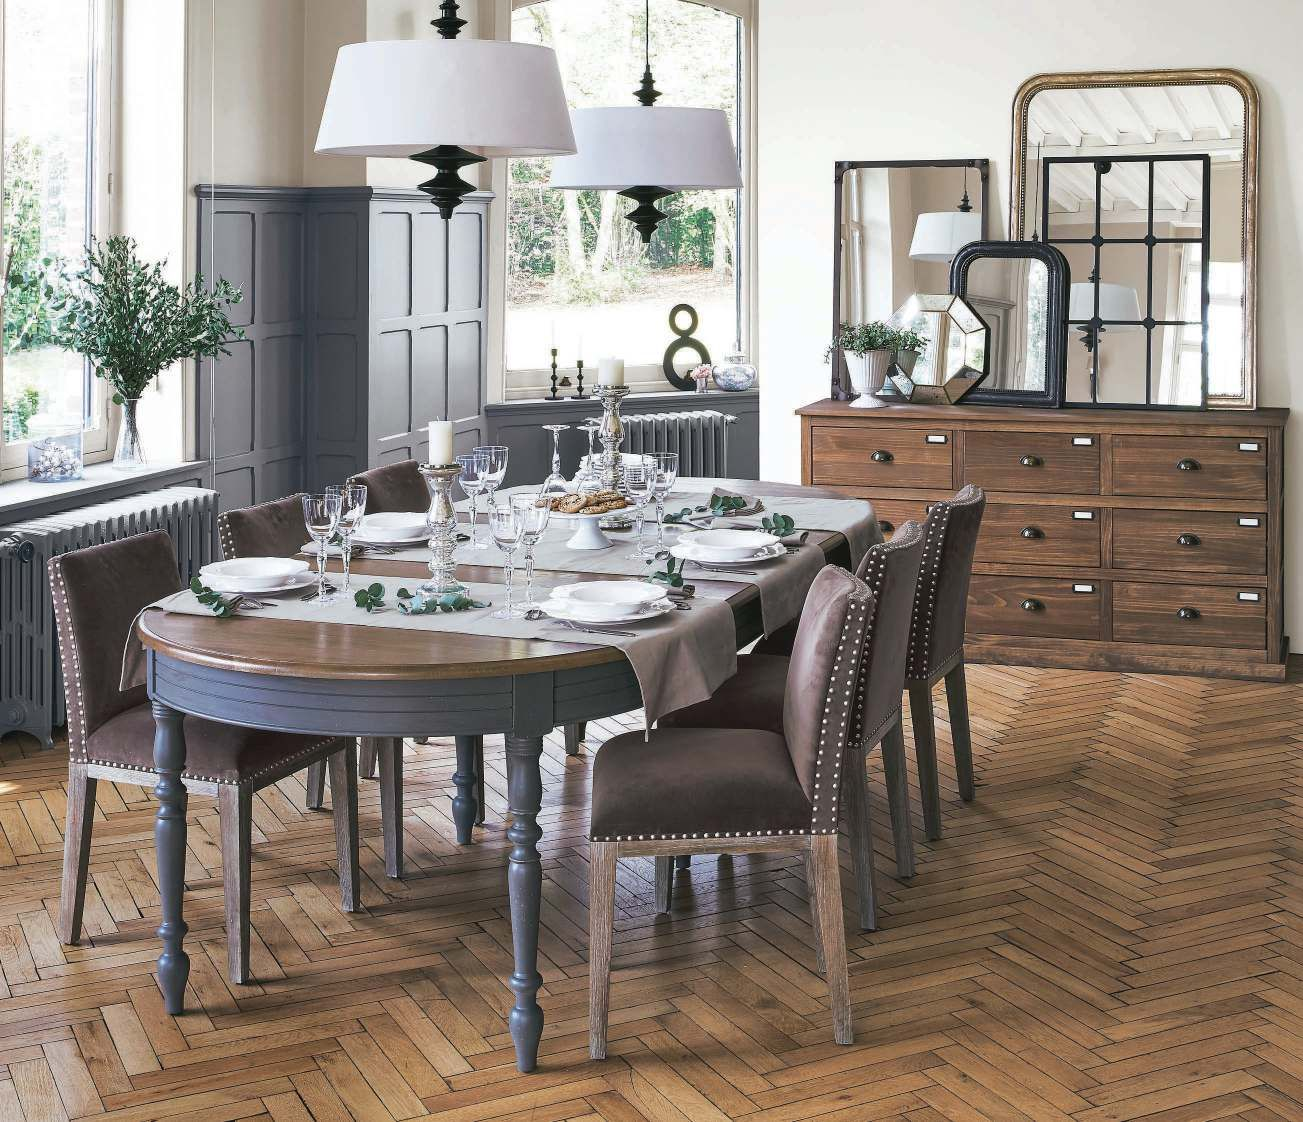 Collection ah 2017 2018 catalogue la redoute int rieurs simple heritage table ch ne anthracite - La redoute interieur catalogue 2017 ...